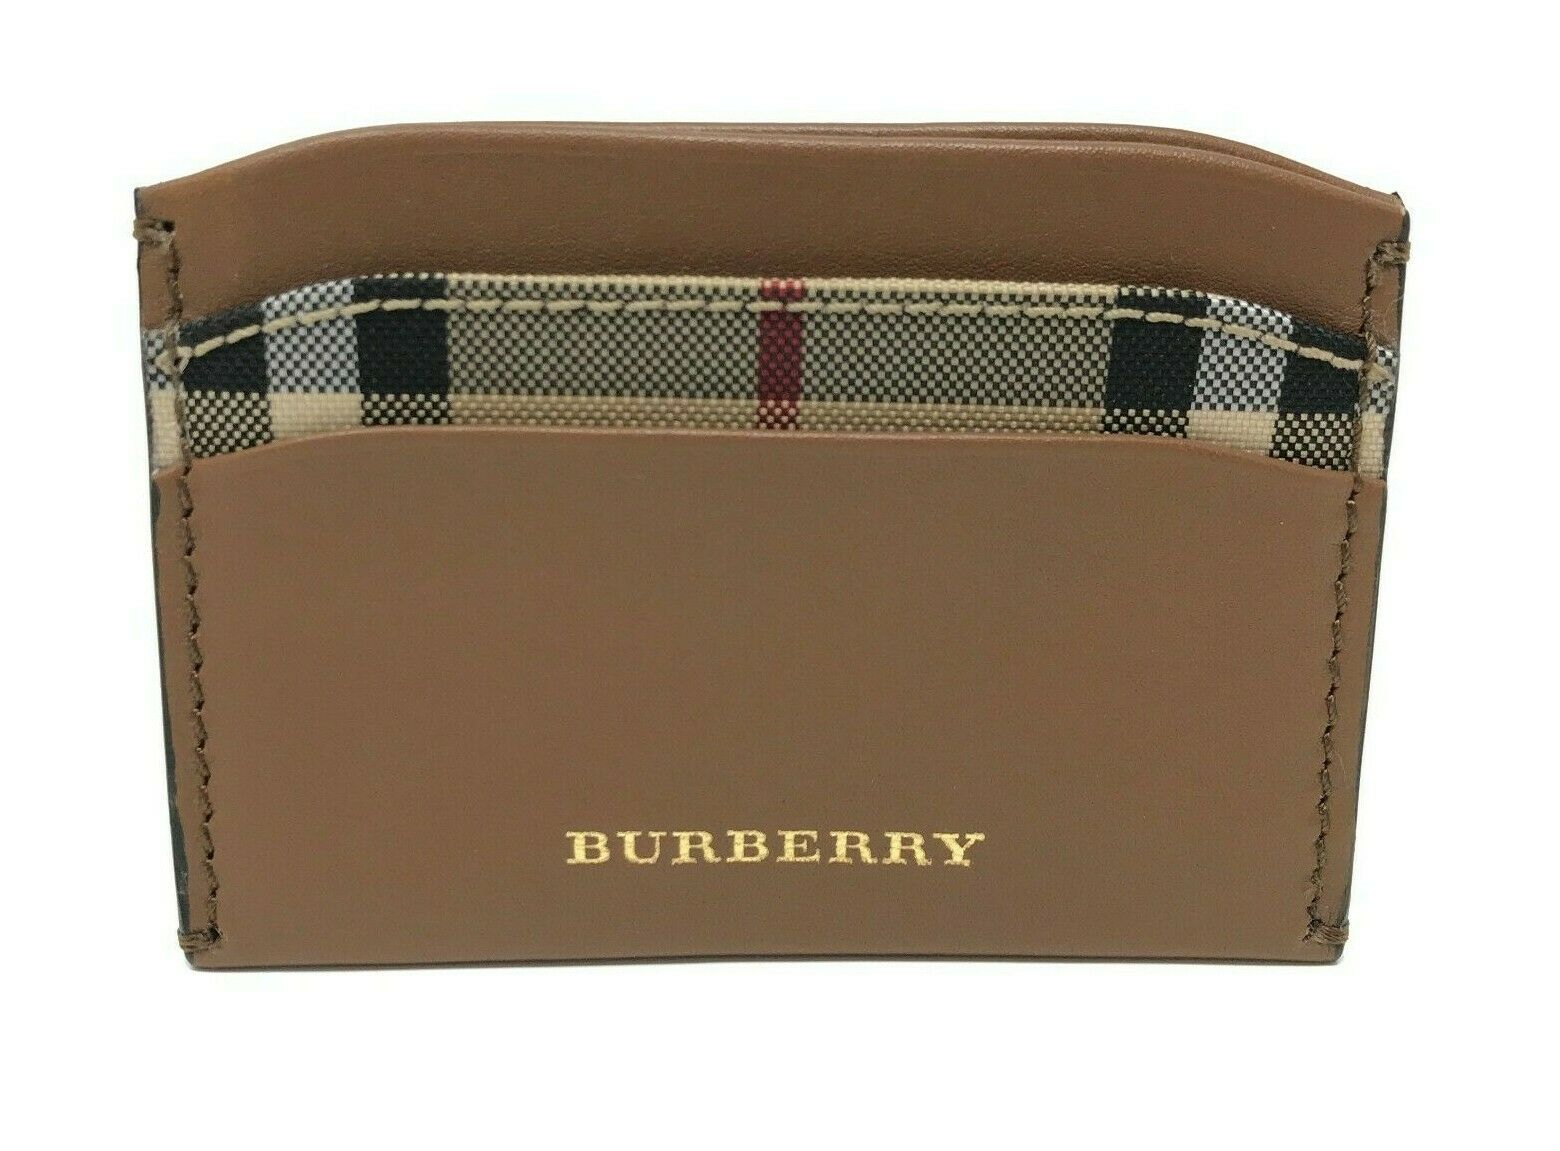 Burberry Men's Horseferry Check Izzy Tan Brown Leather Card Case Wallet